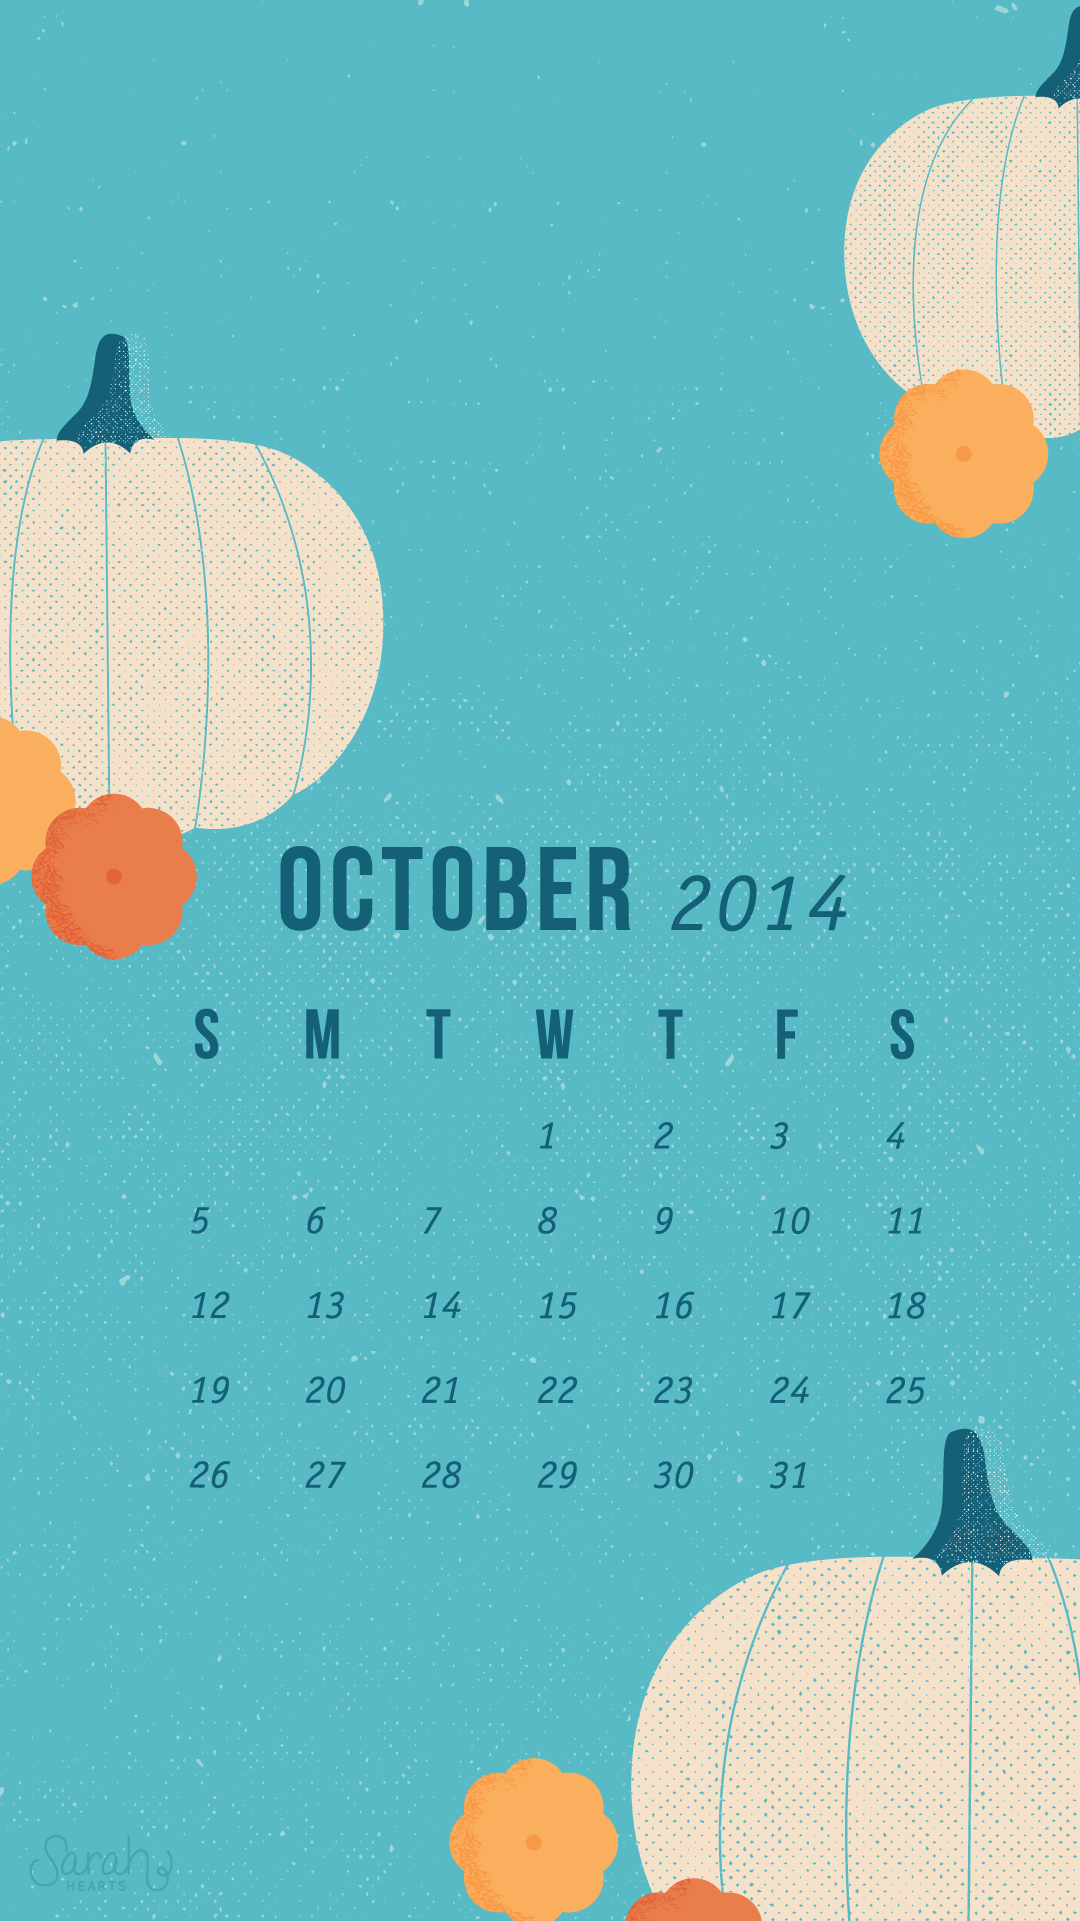 Wallpaper For Iphone 6 Fall October 2014 Calendar Wallpapers Sarah Hearts